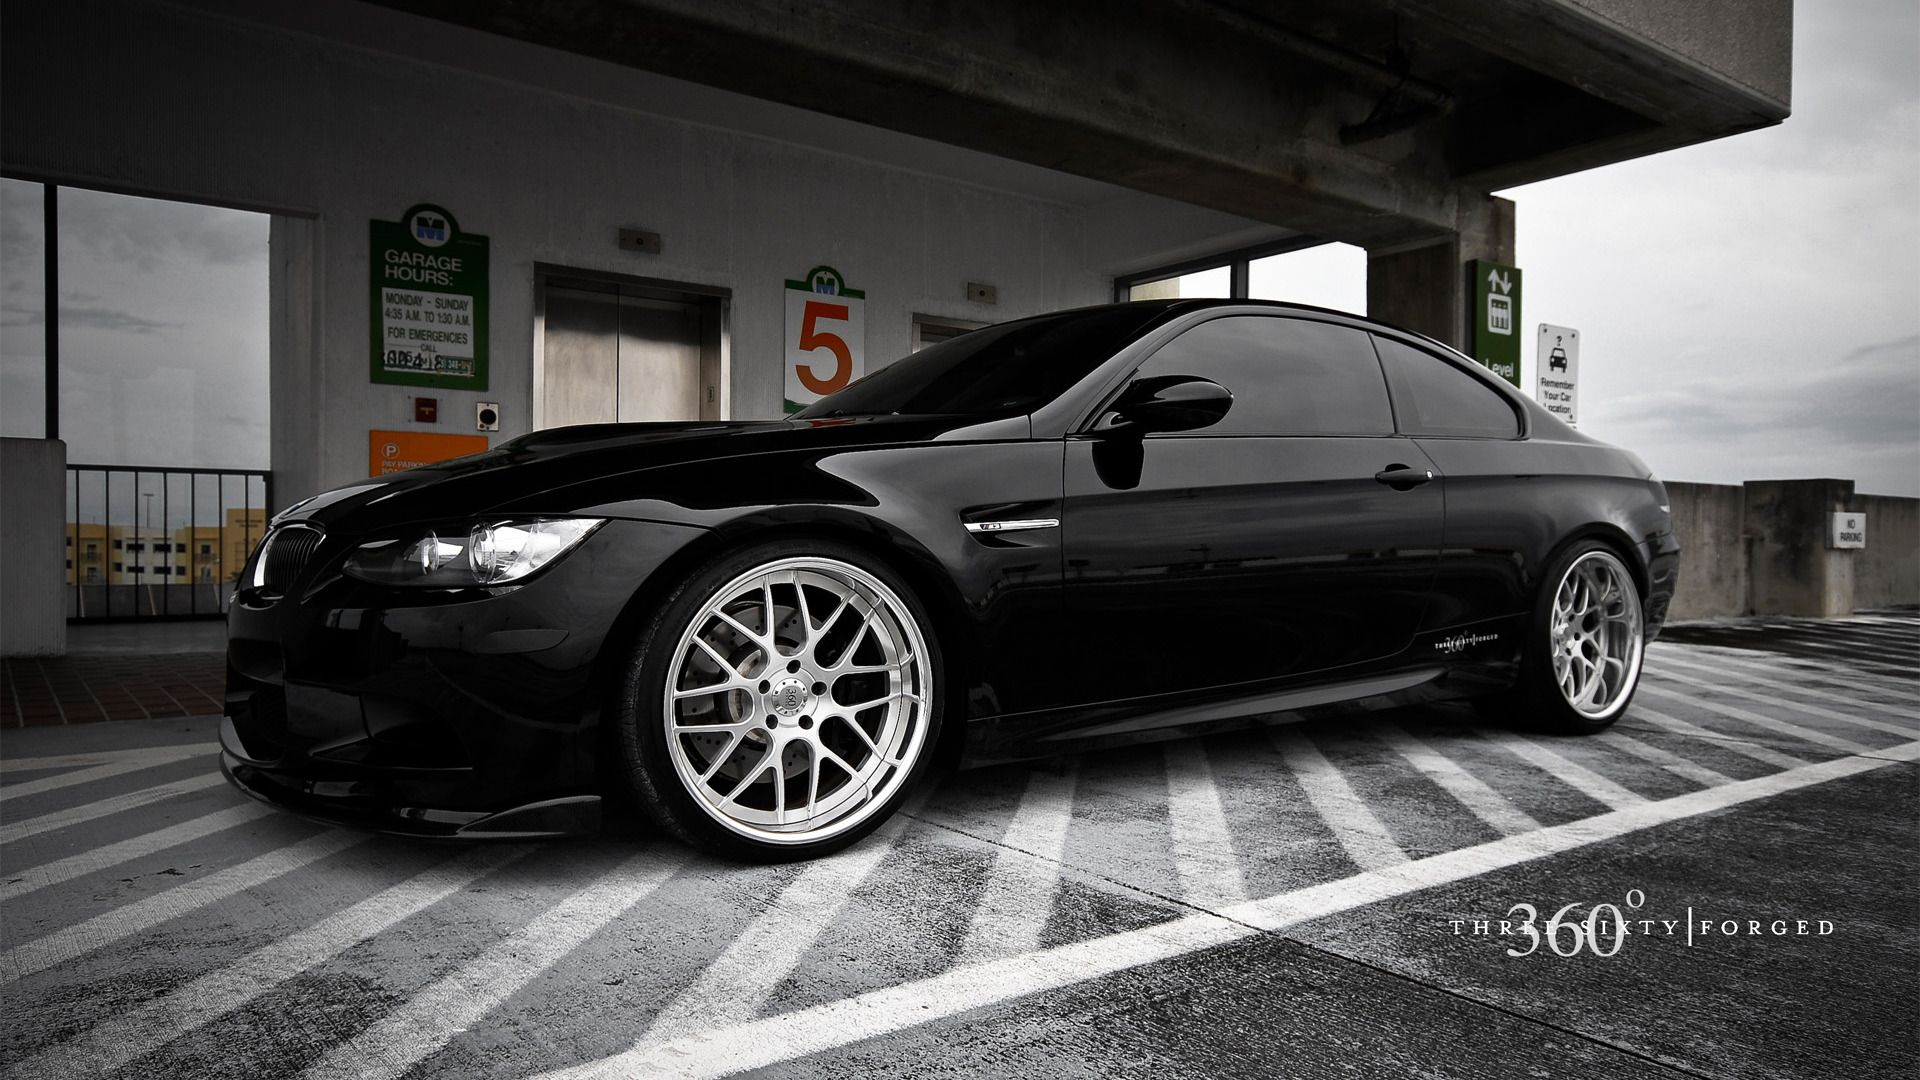 Black Bmw Hd Wallpaper Dark